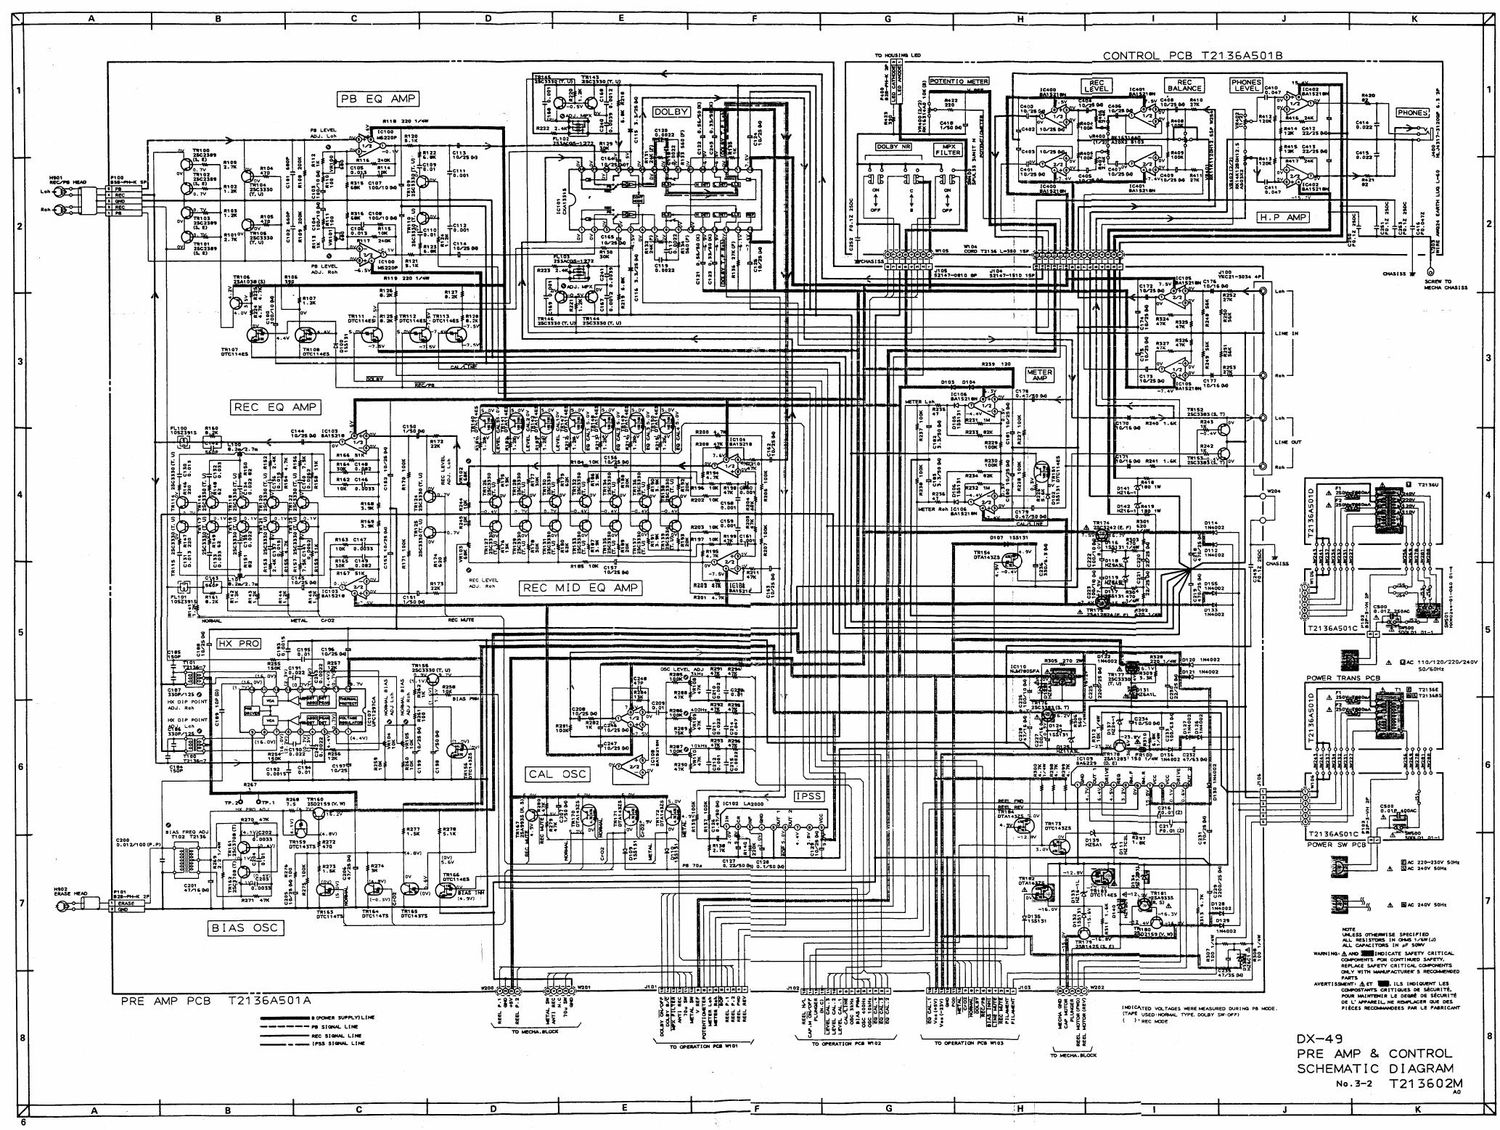 Akai DX 49 Schematic